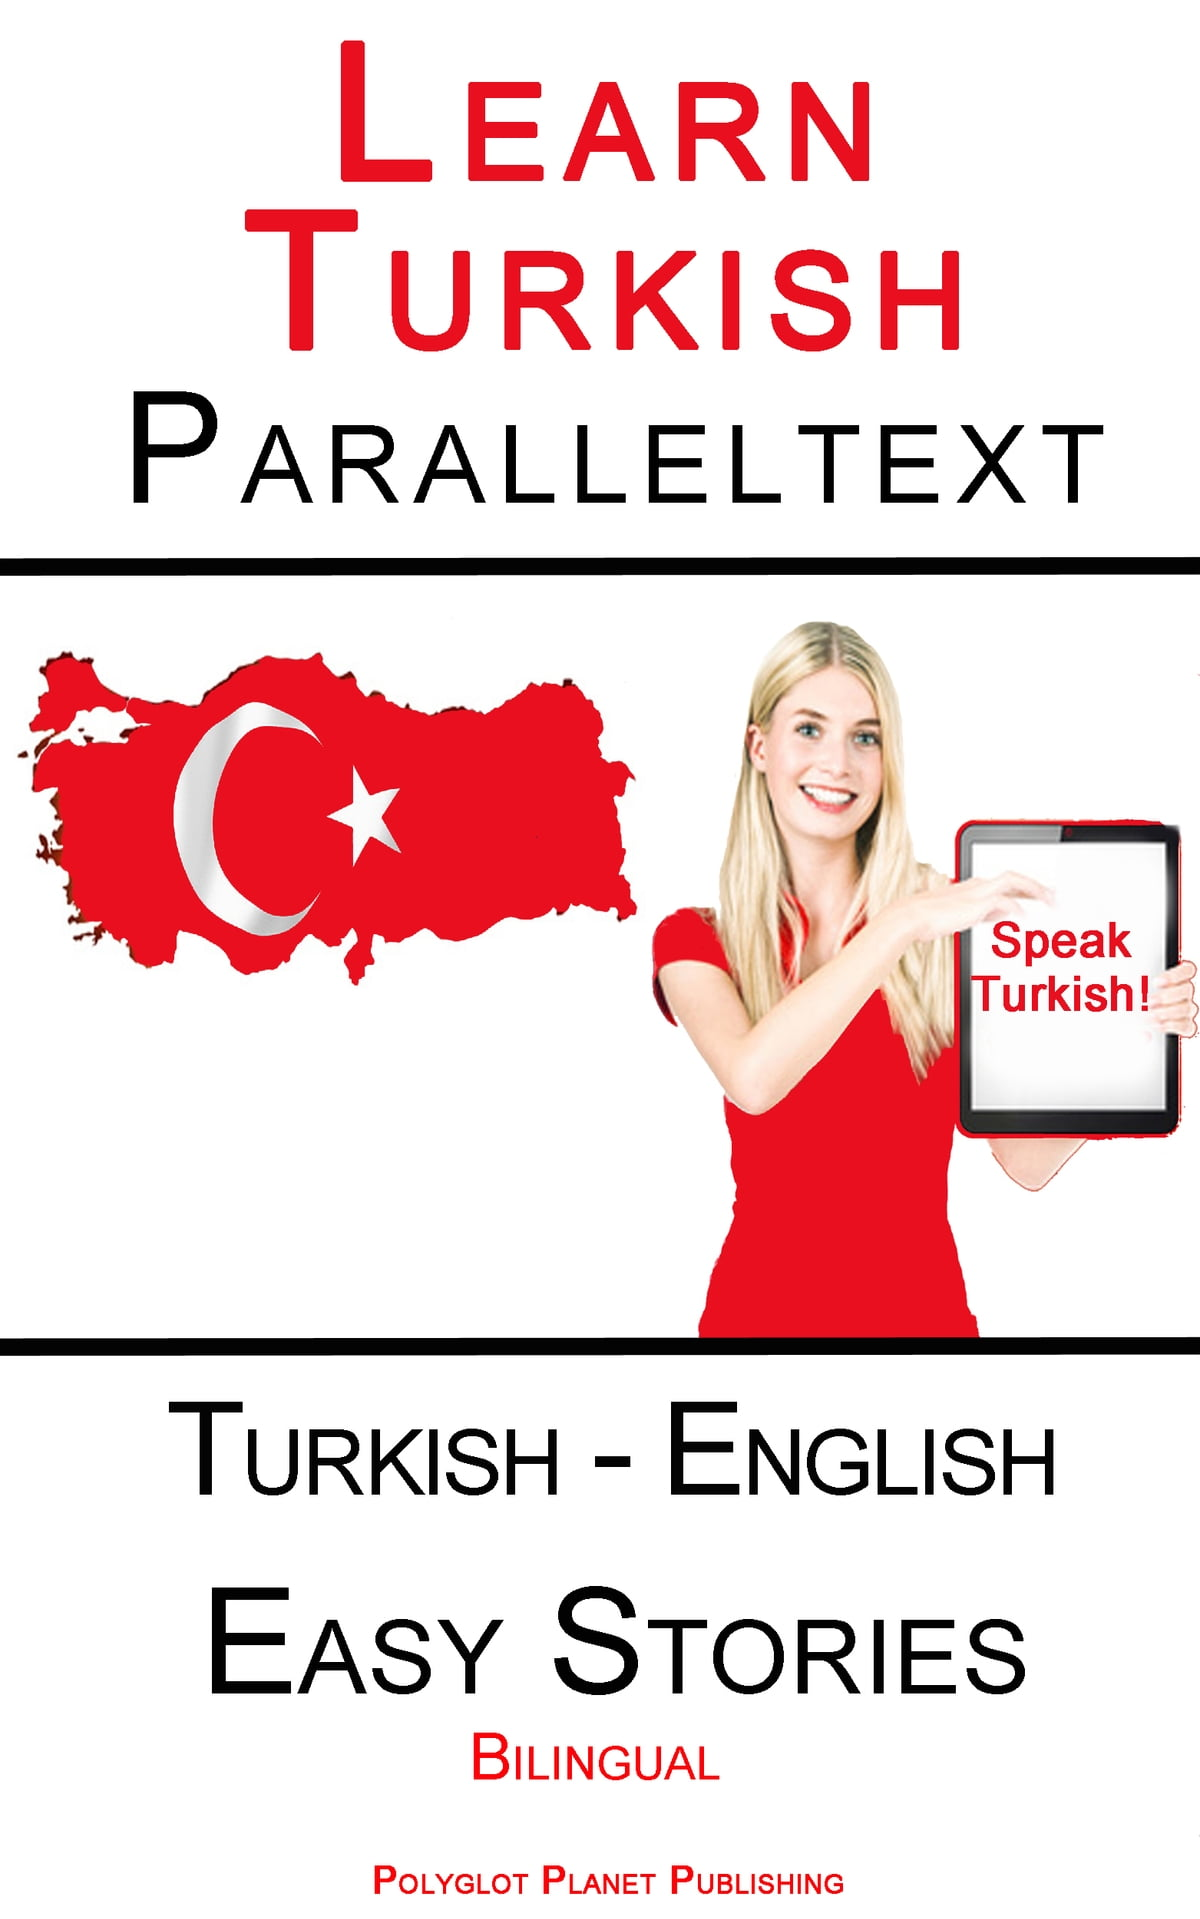 Learn Turkish Easily - Posts   Facebook